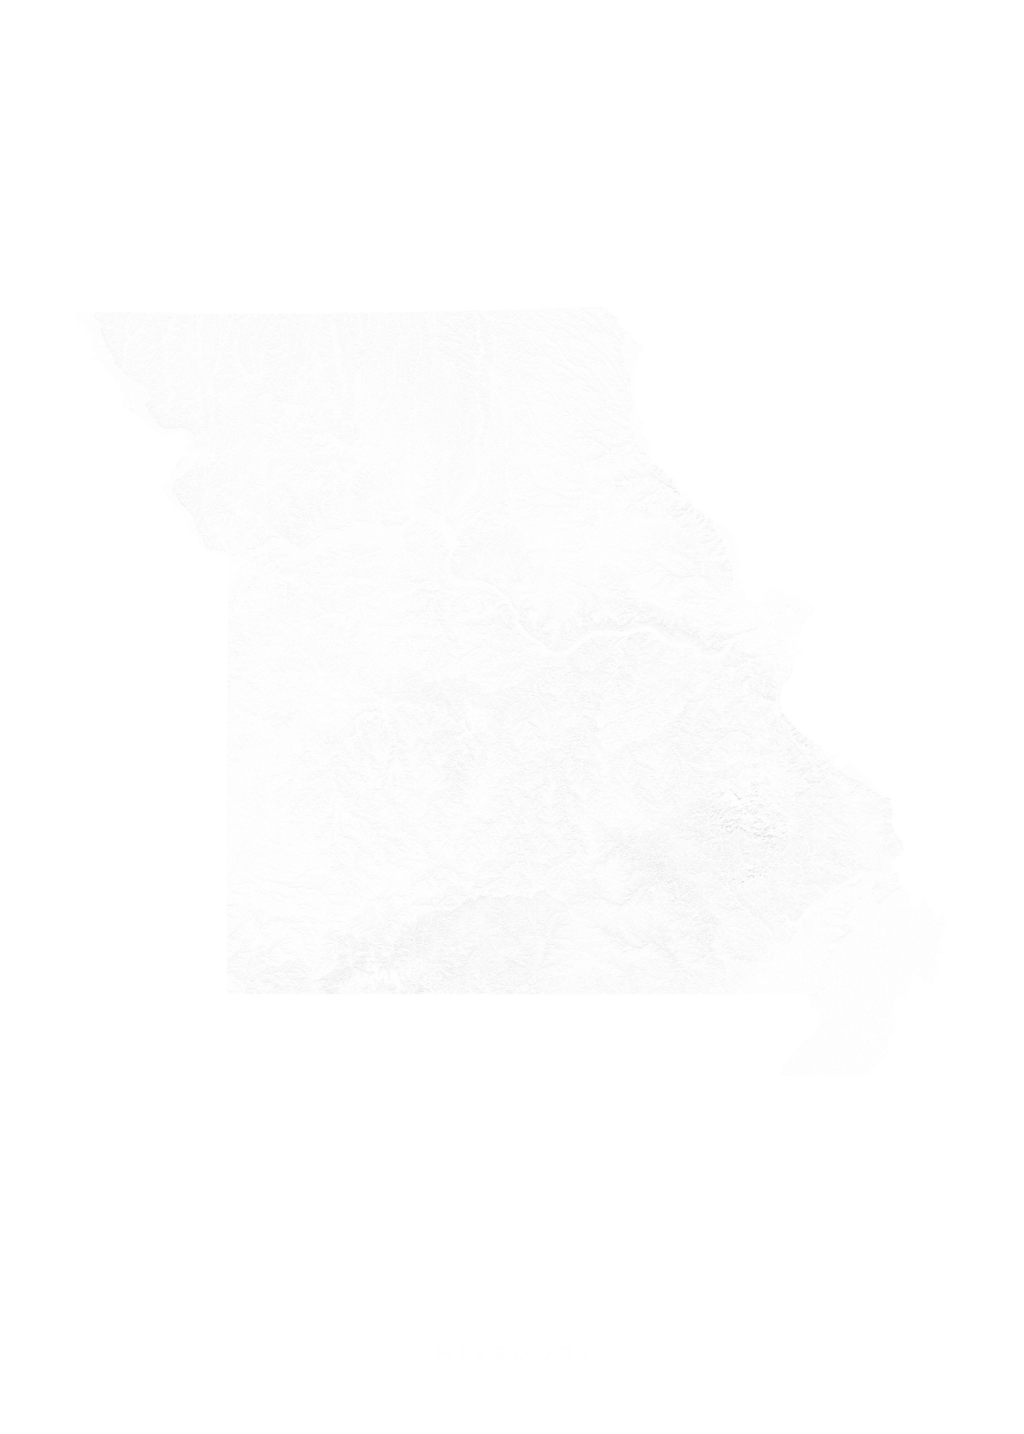 Missouri wall map